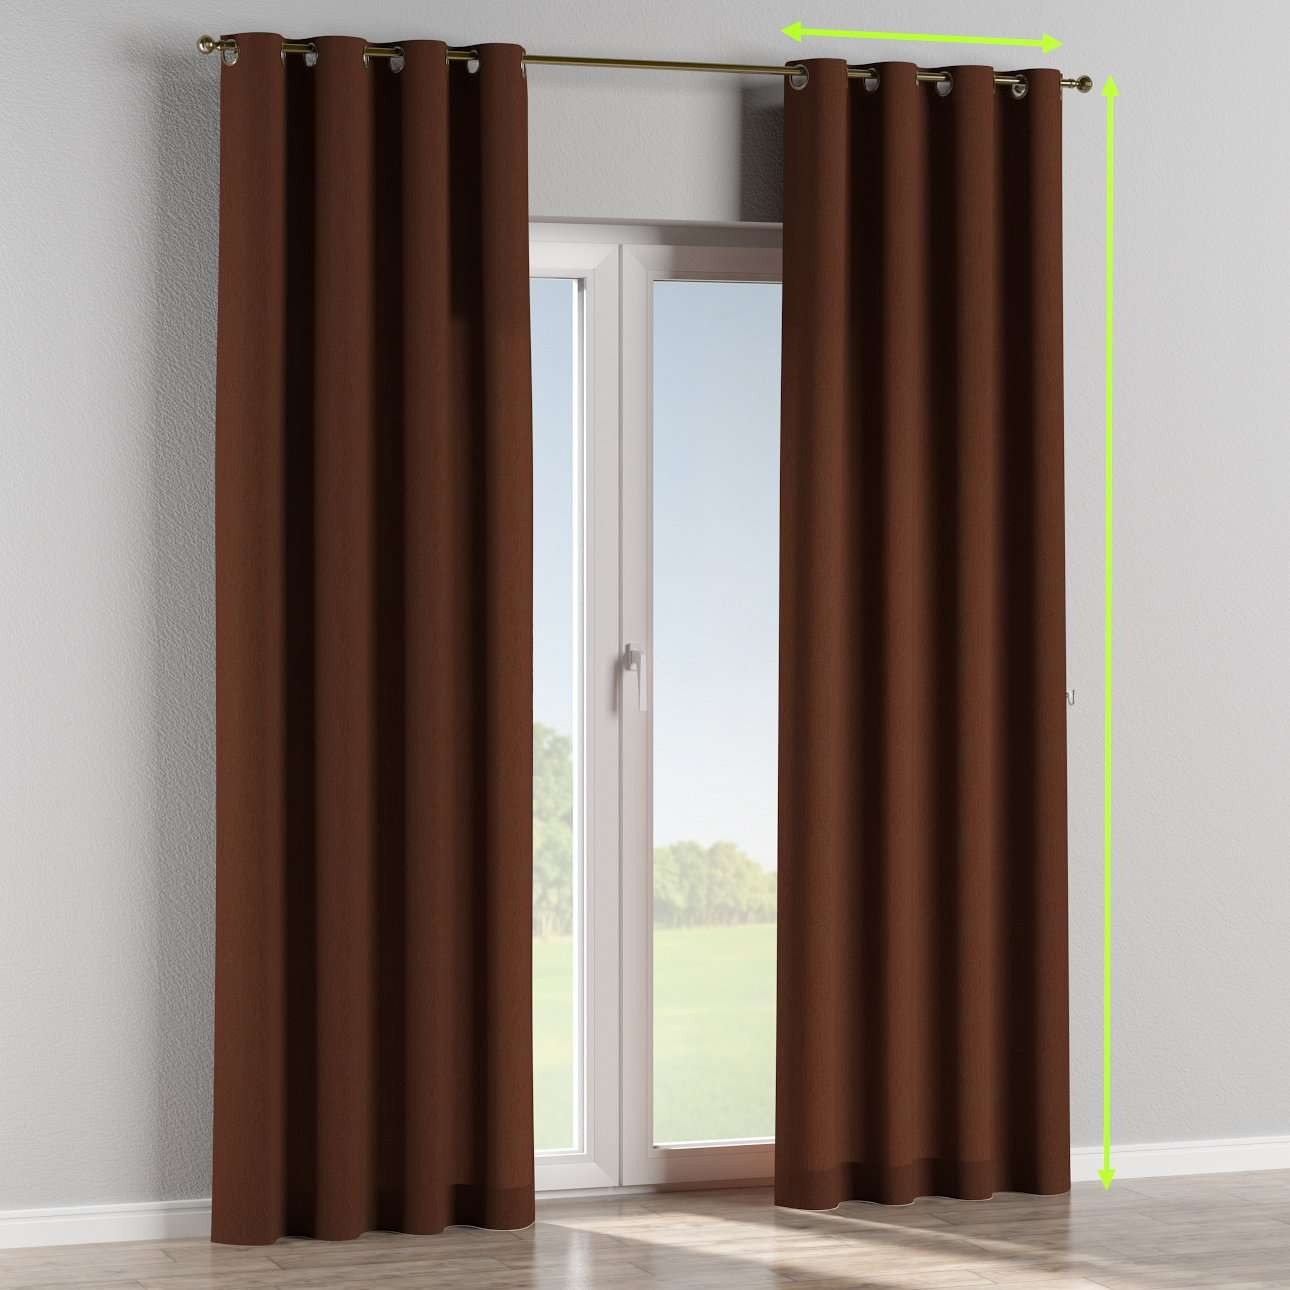 Eyelet lined curtains in collection Chenille, fabric: 702-18